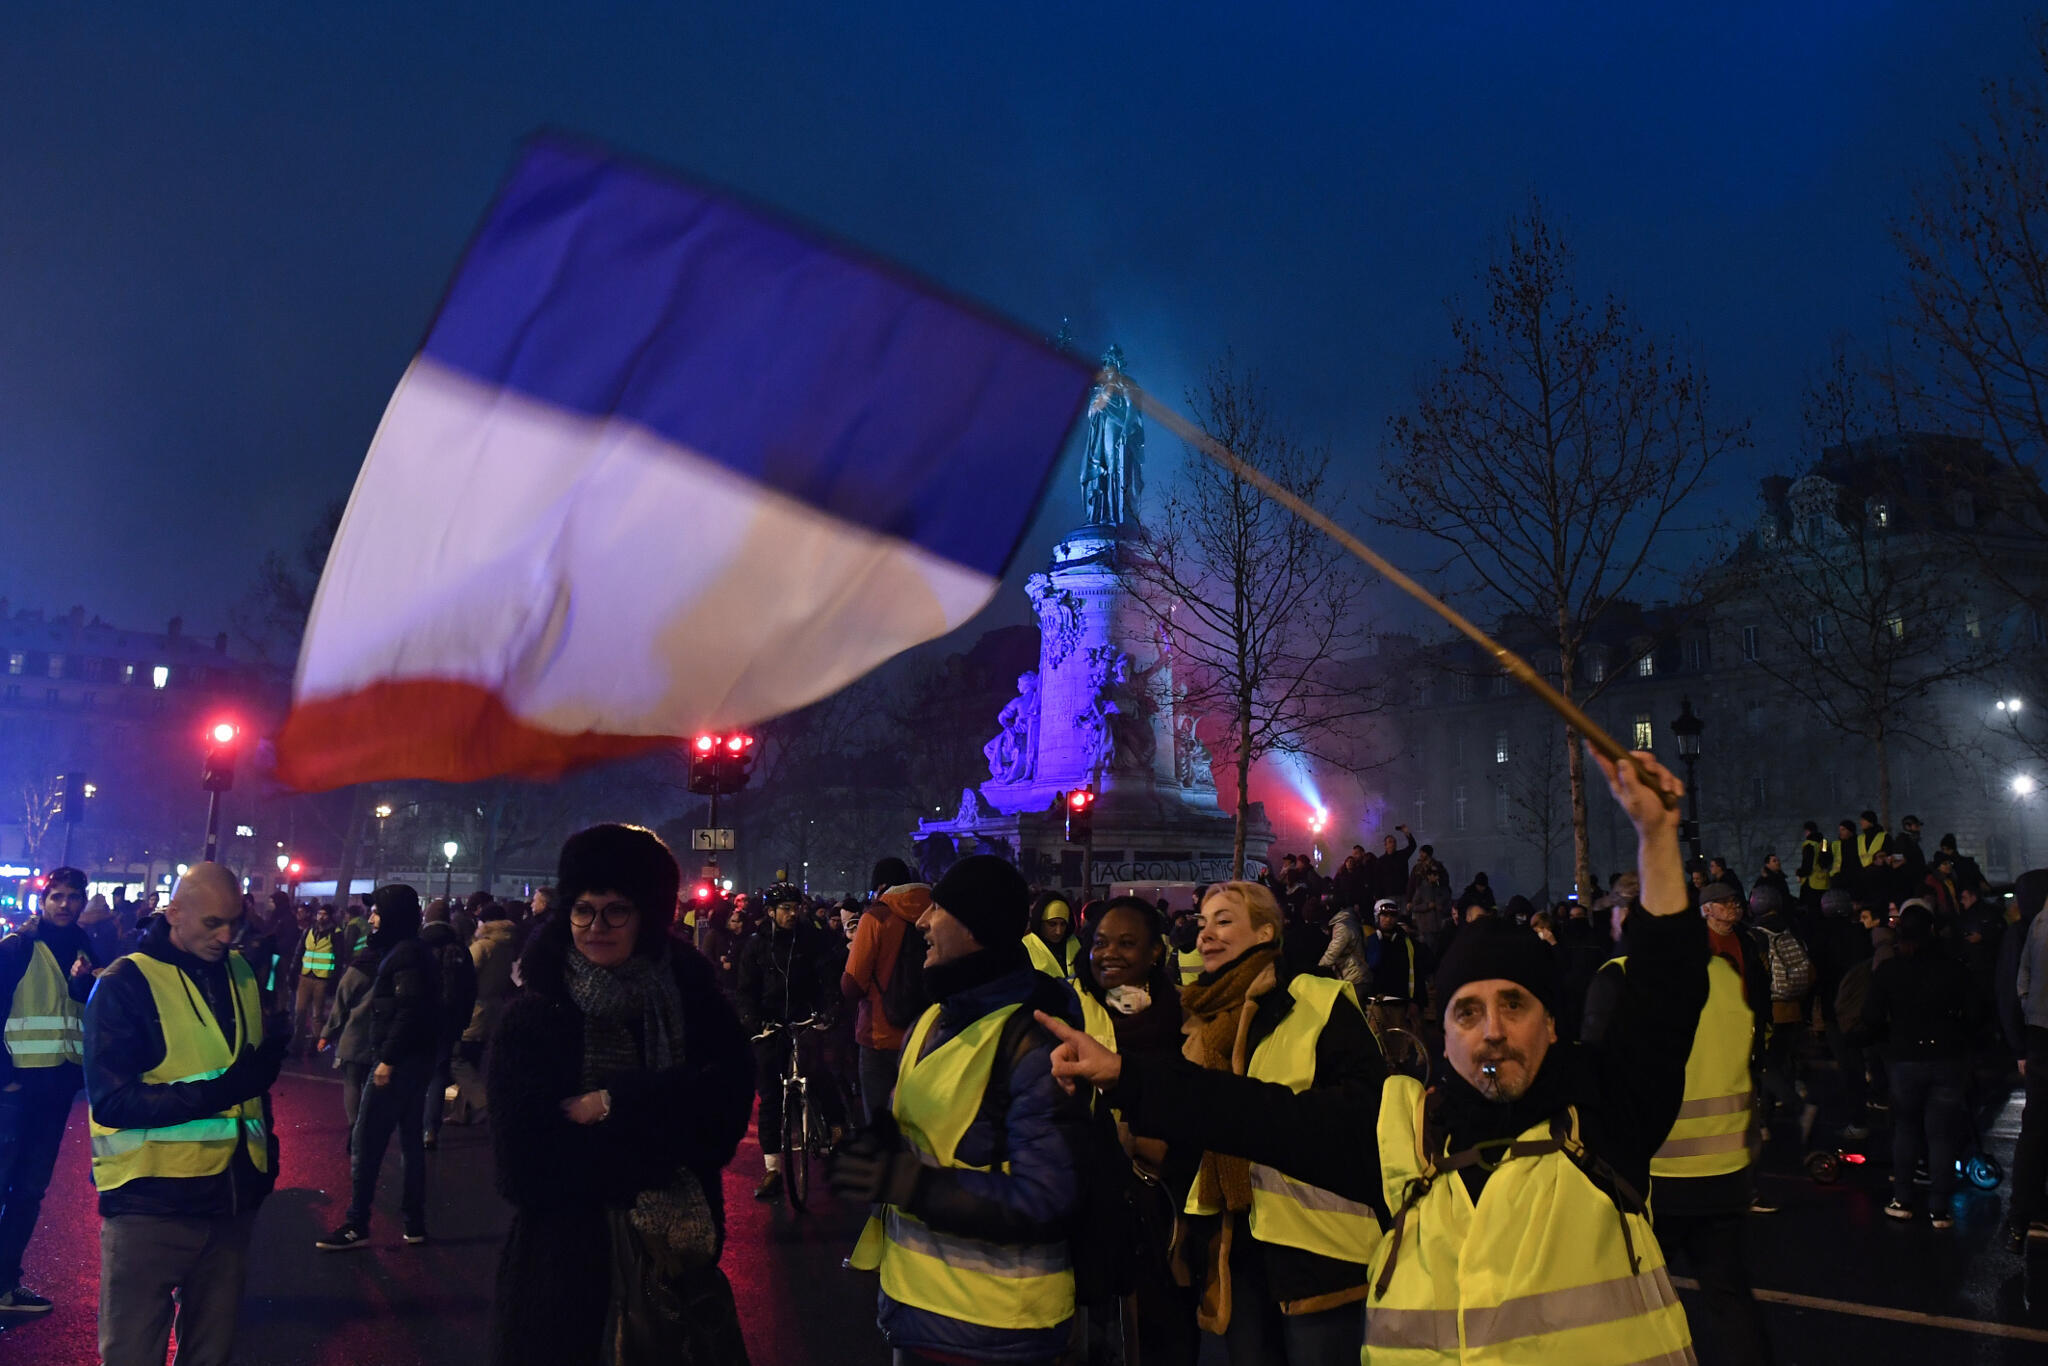 Uncertainty over the future of the Yellow vest protest movement makes 2019 economic growth predictions difficult